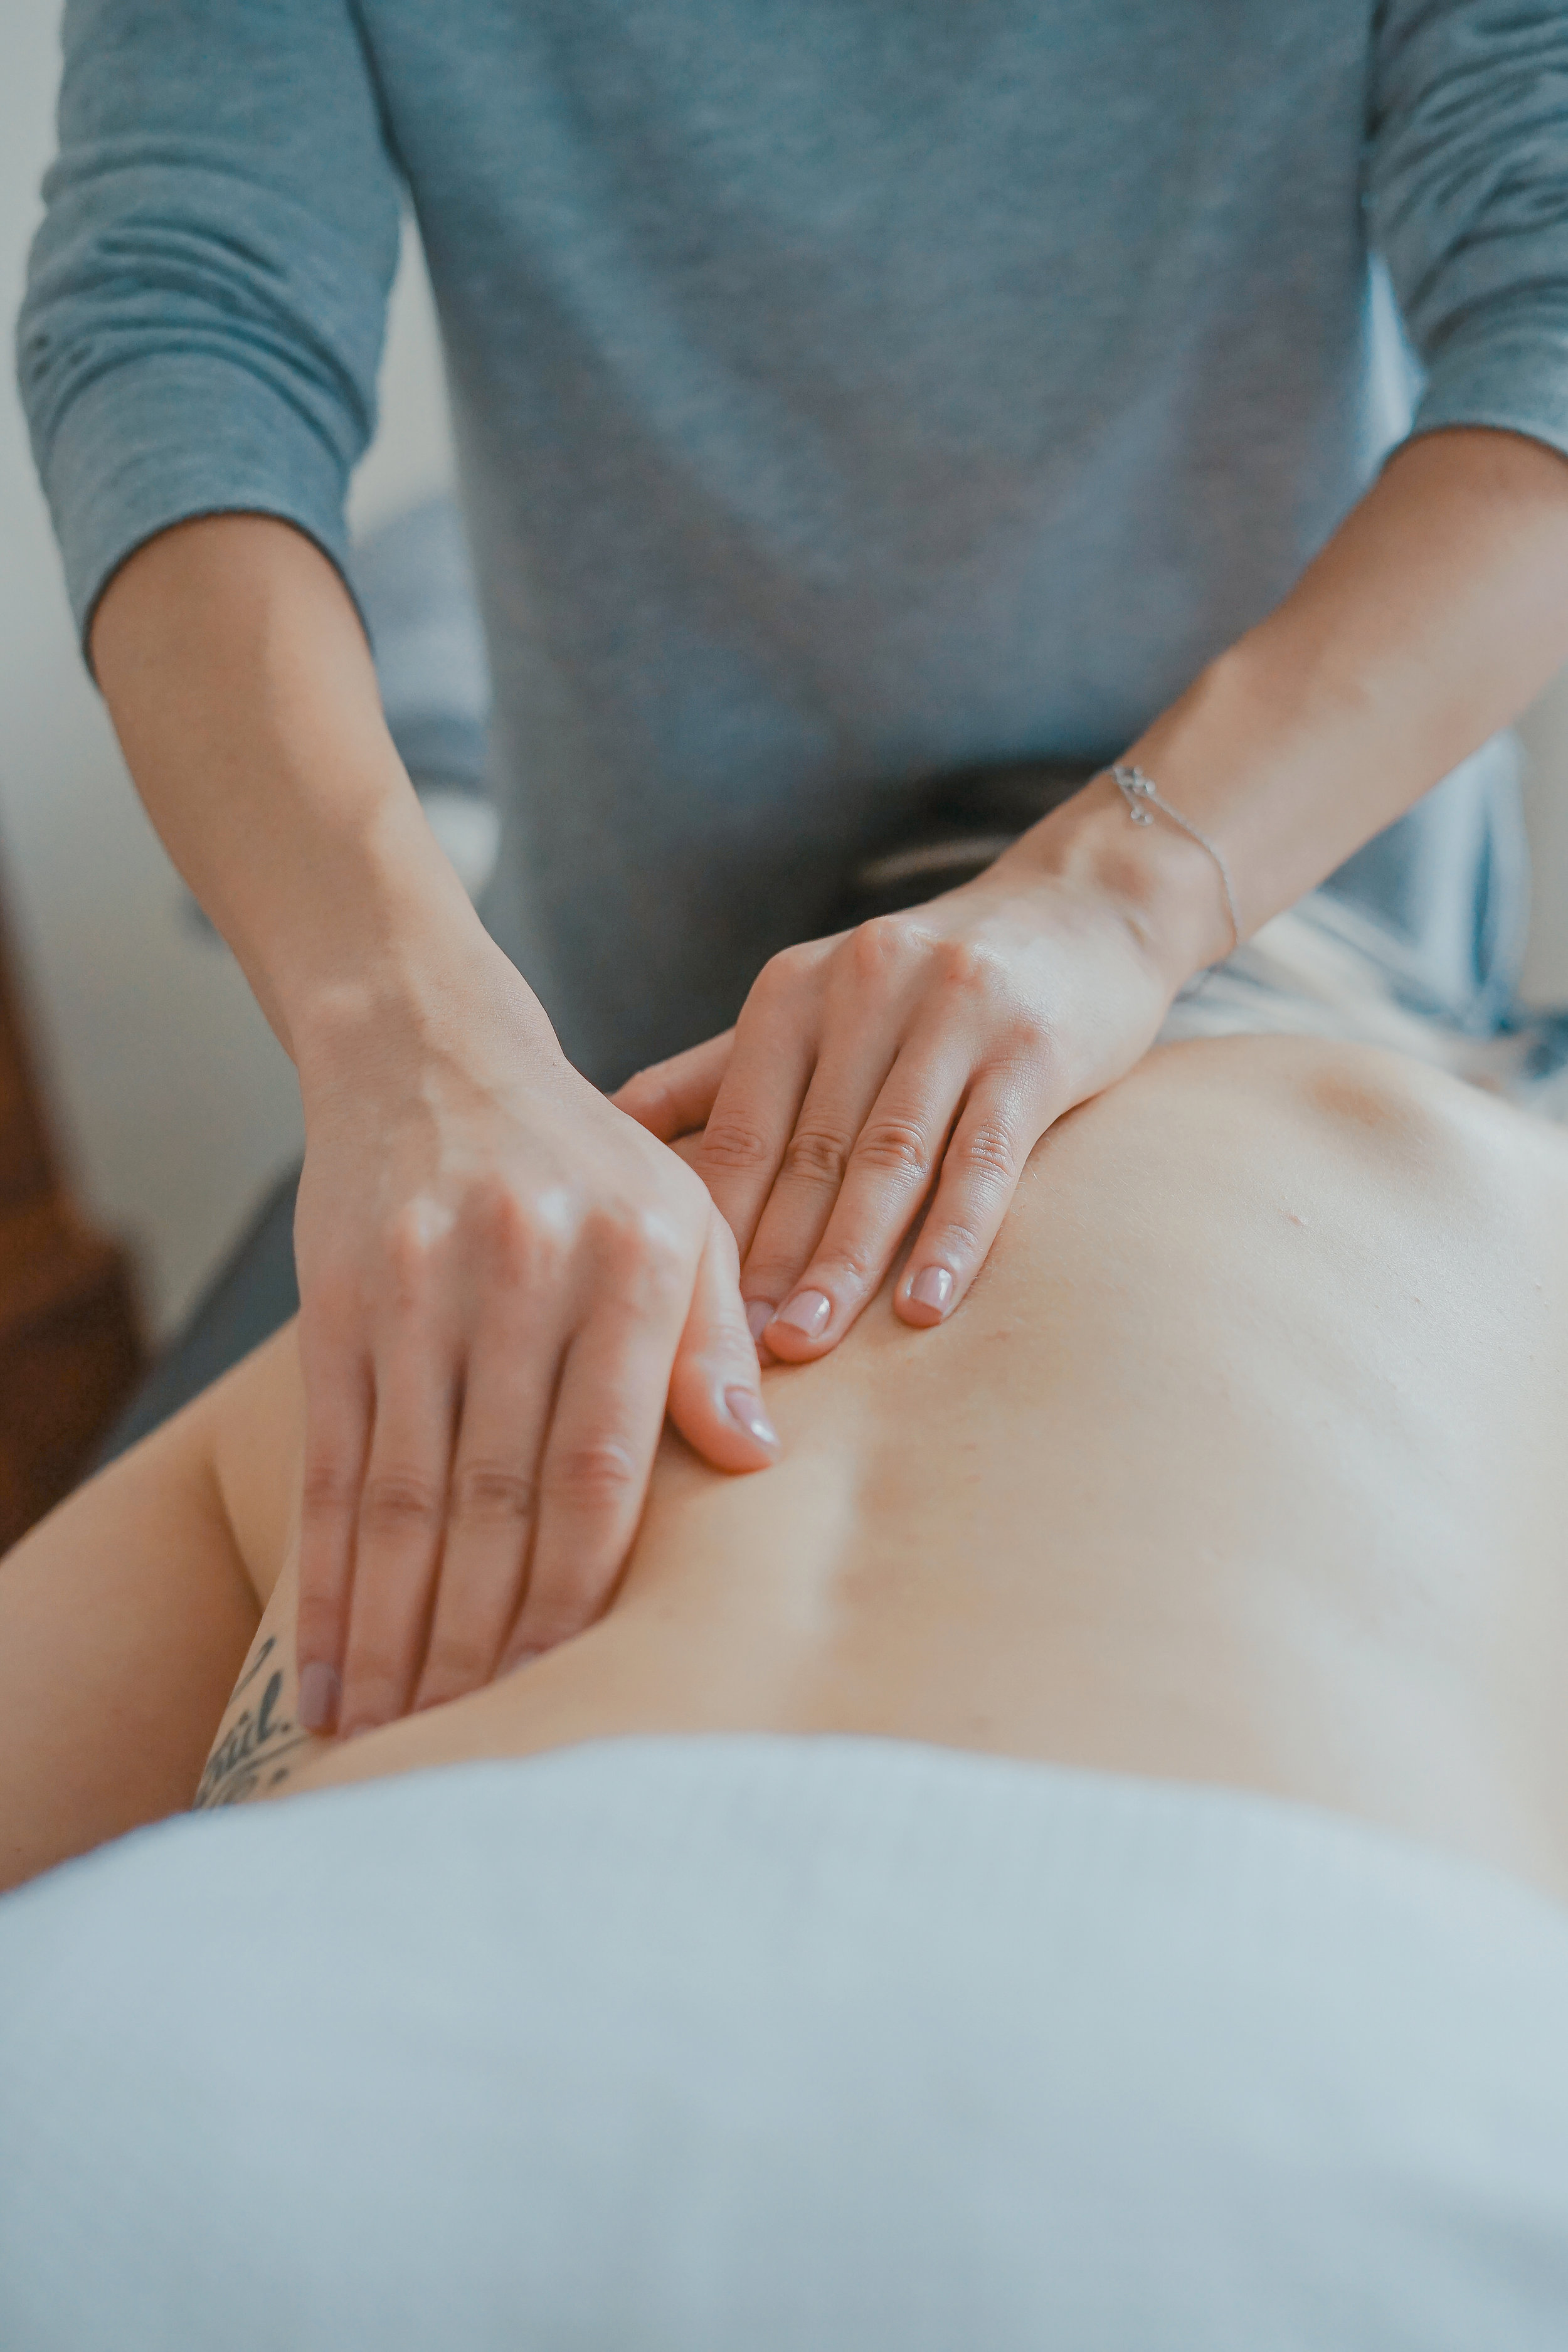 MASSAGE THERAPY&ENERGY WORK - healing through touch therapies